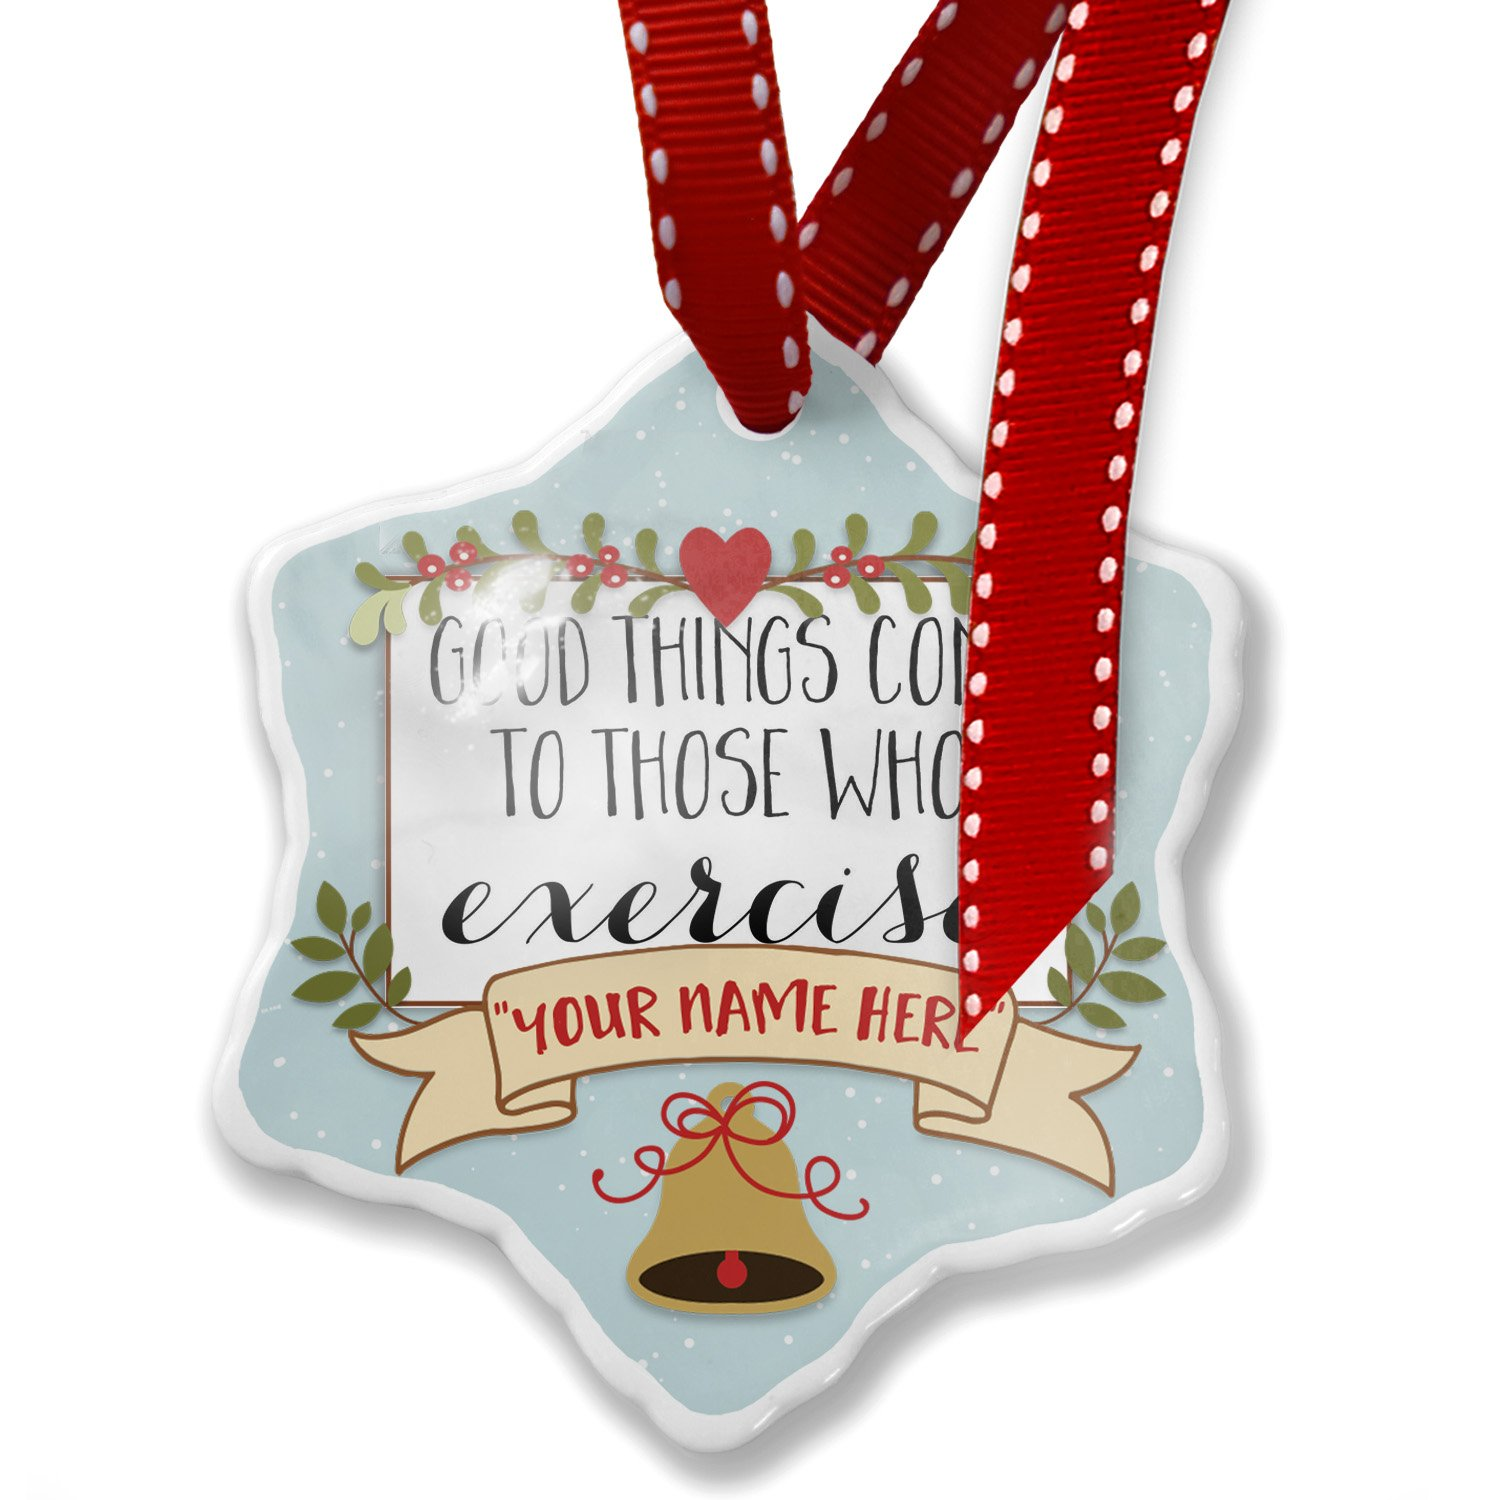 Add Your Own Custom Name, Good Things Come to Those Who Exercise Funny Saying Christmas Ornament NEONBLOND